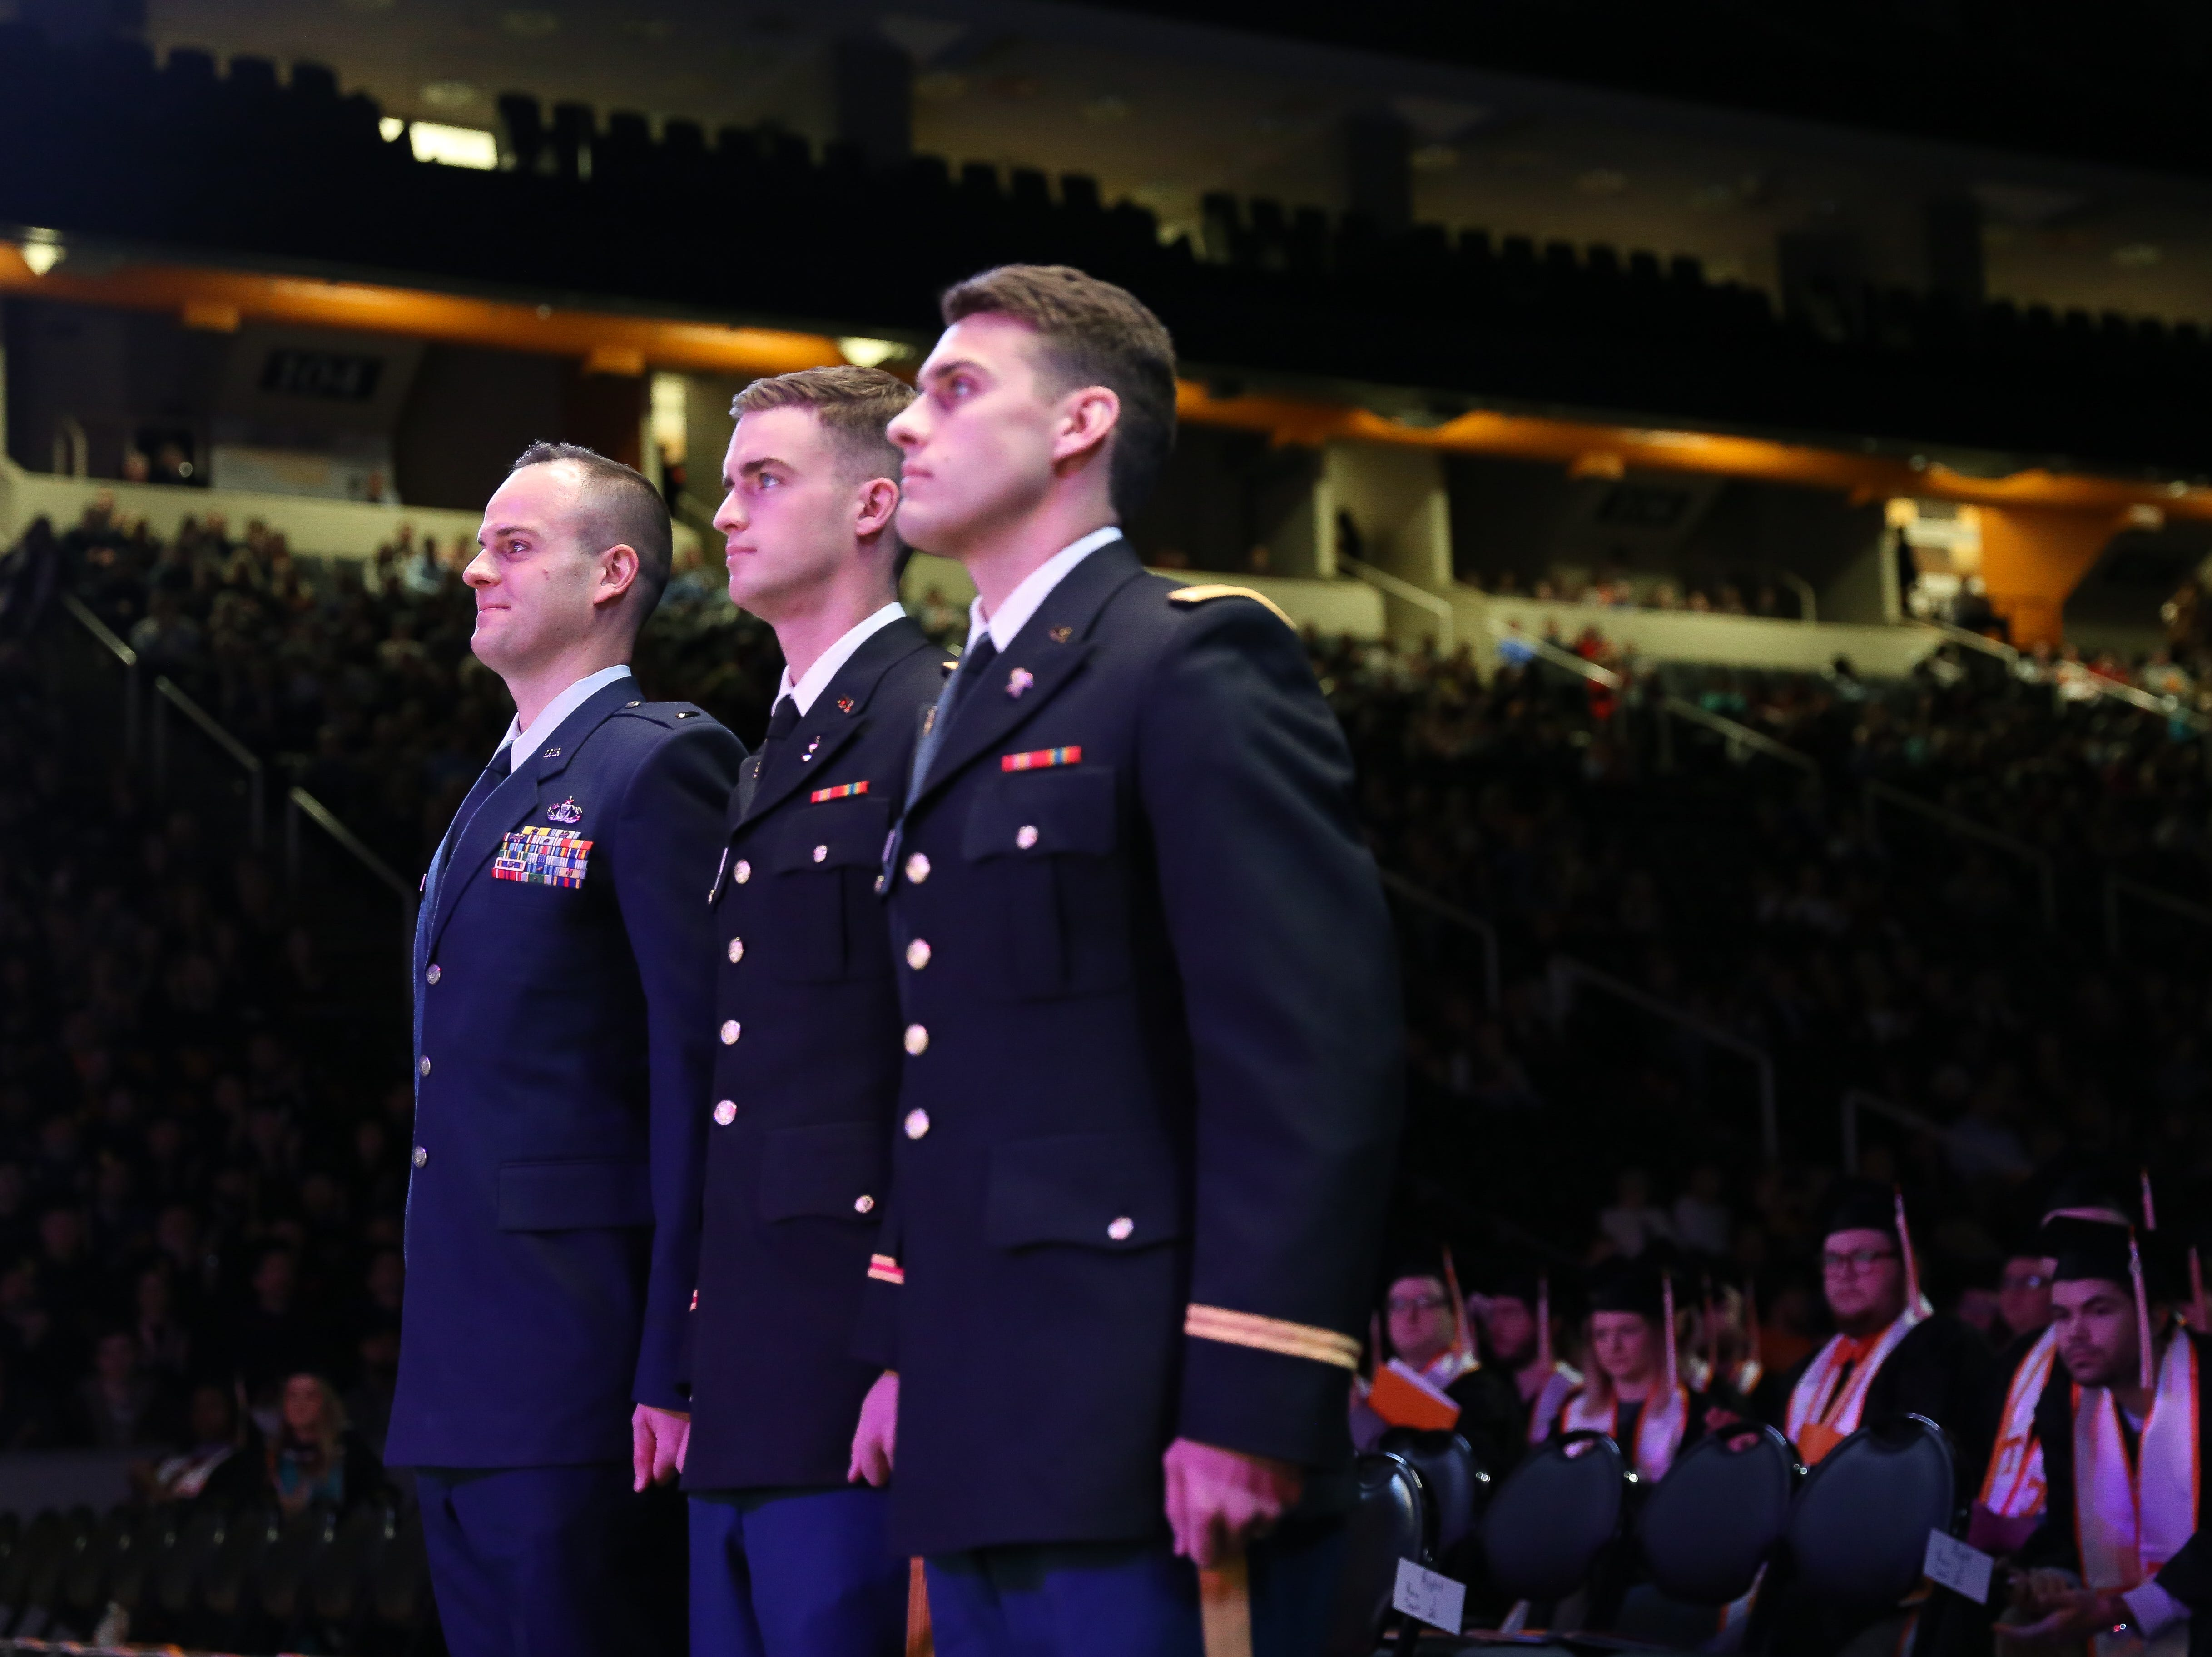 Commissions in the United States Armed Forces are honored during the University of Tennessee winter Commencement ceremony at Thompson-Boling Assembly Center and Arena in Knoxville Friday, Dec. 14 2018.